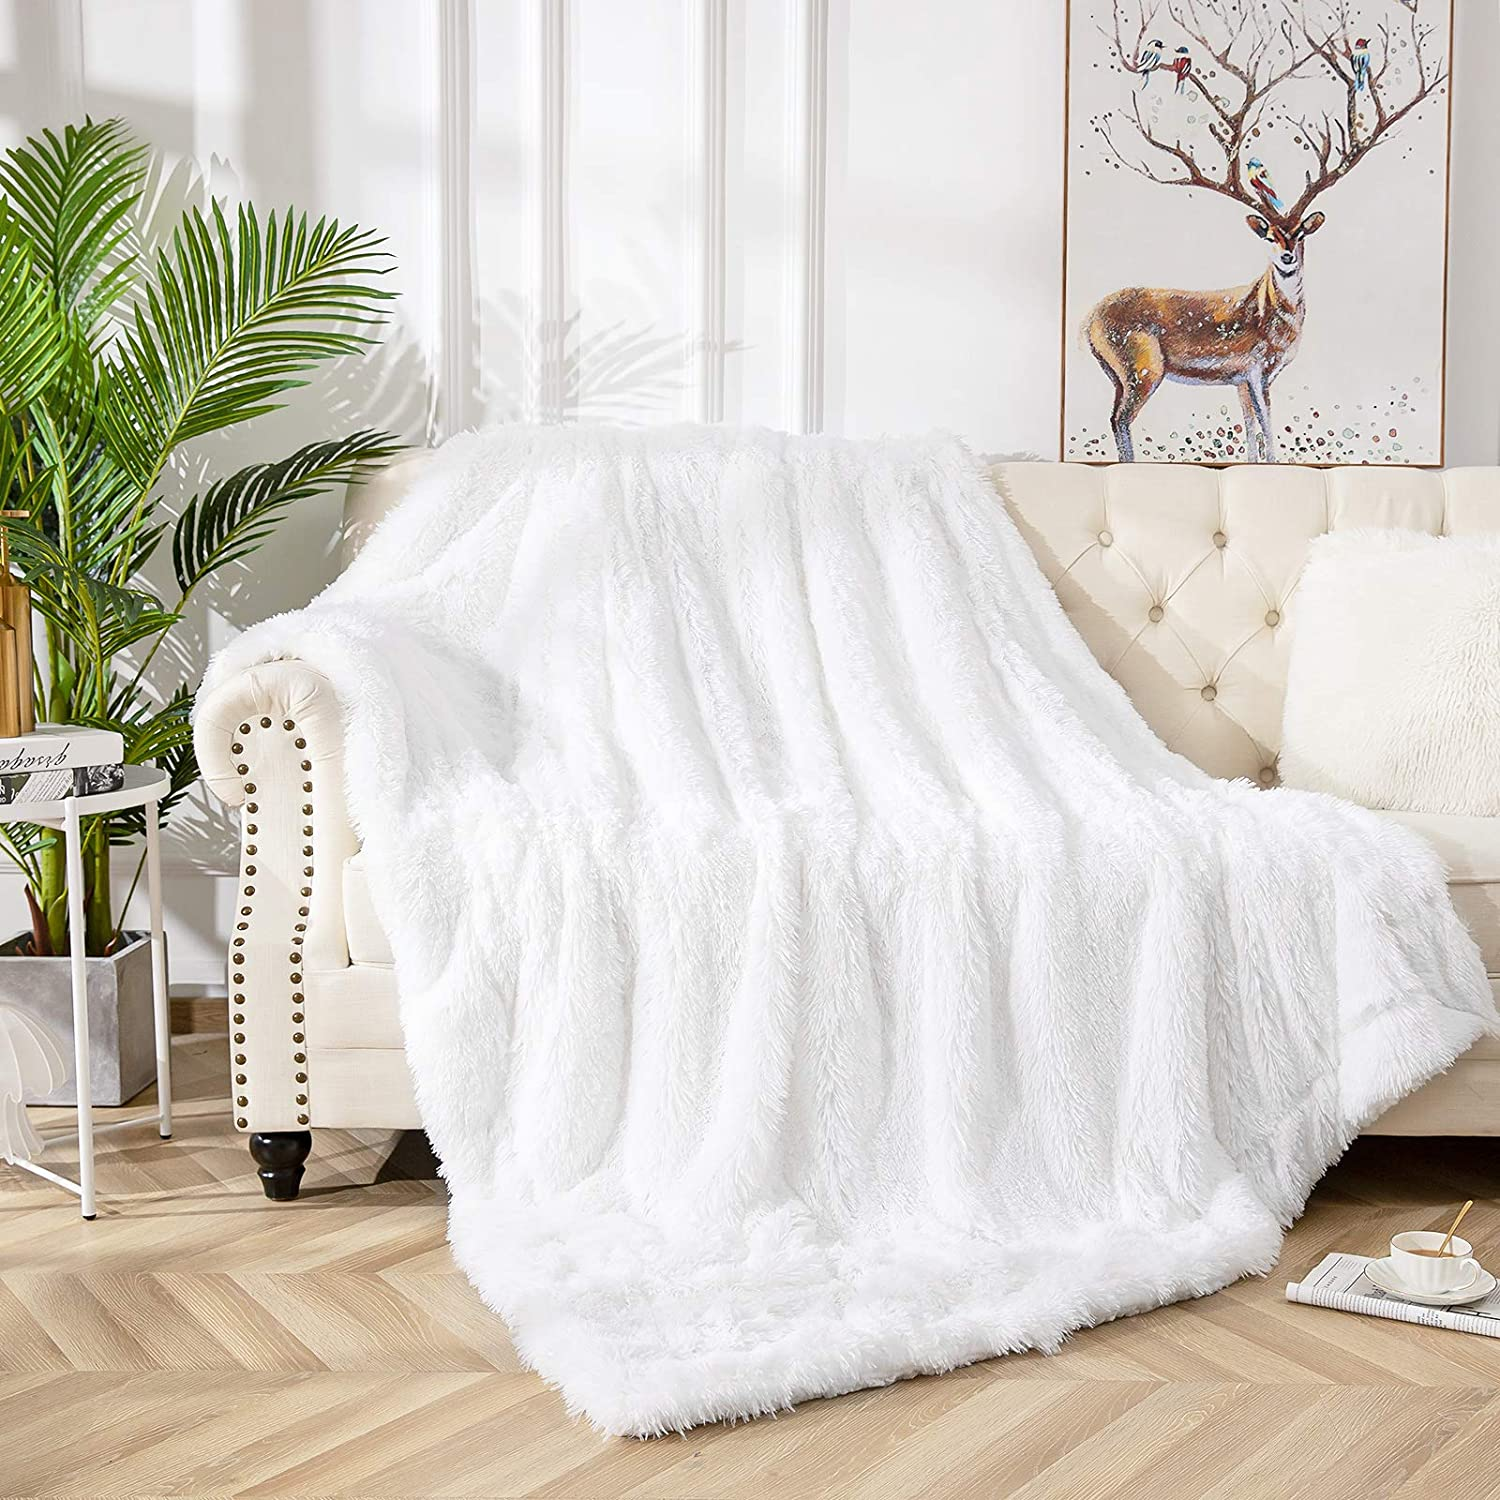 Vasofe Warm Shaggy Sherpa Blankets Fluffy Soft Fuzzy Faux Fur Throw Blanket for Xmas Couch Sofa Photo Home Decor White Bed Throw Size